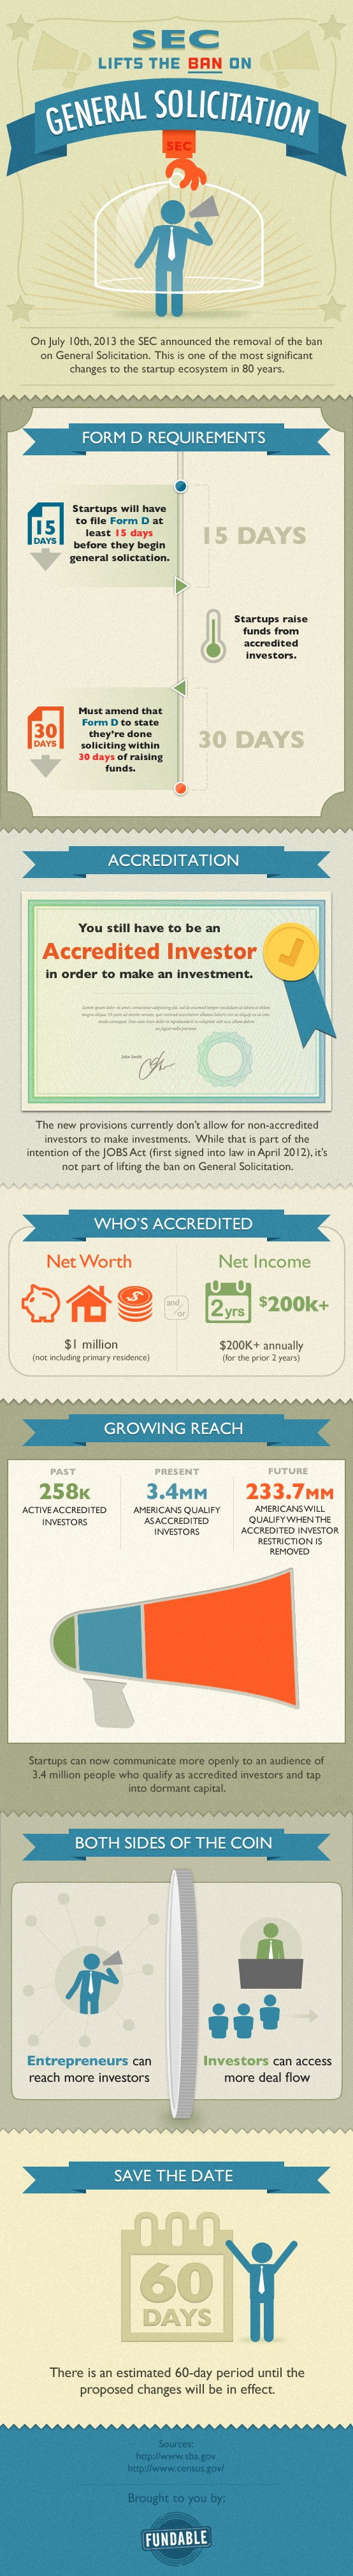 Infographic: SEC Lifts the Ban on General Solicityation